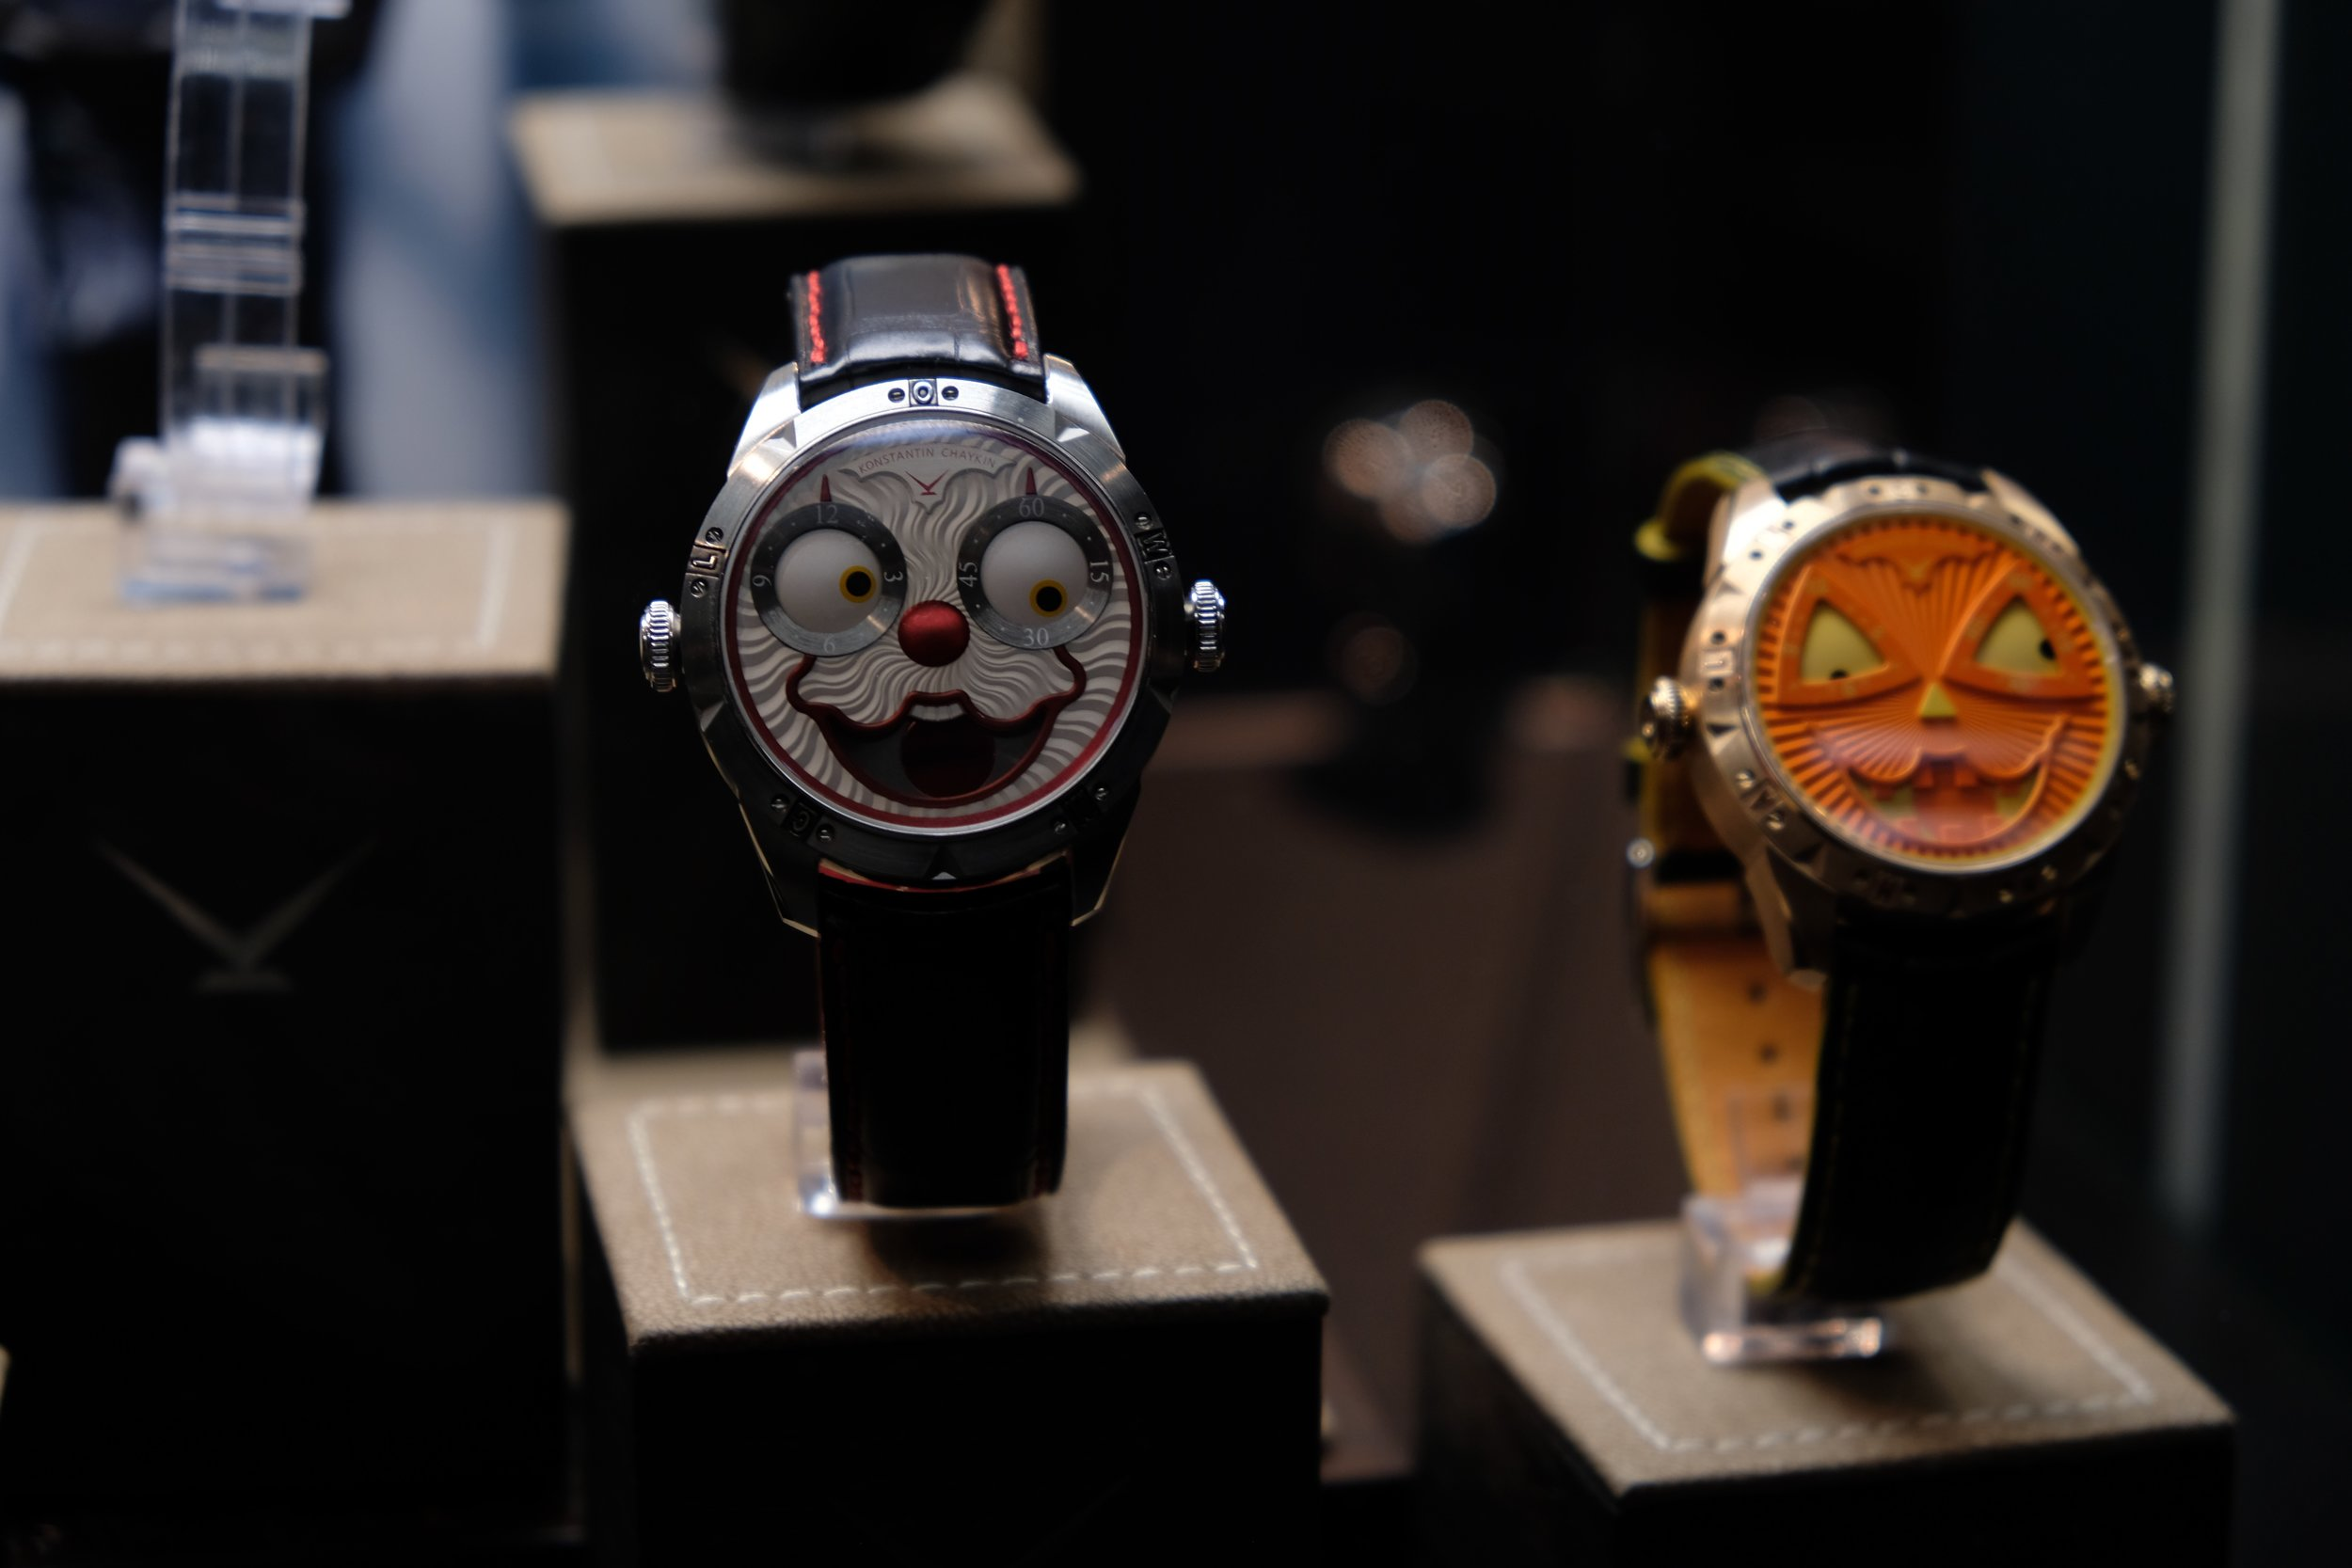 PHOTO COURTESY OF THE RIVERDALE REVIEW   KONSTANTIN CHAYKIN JOKER WATCH (LEFT), AND THEIR NEW RELEASE JOKER HALLOWEEN (RIGHT)